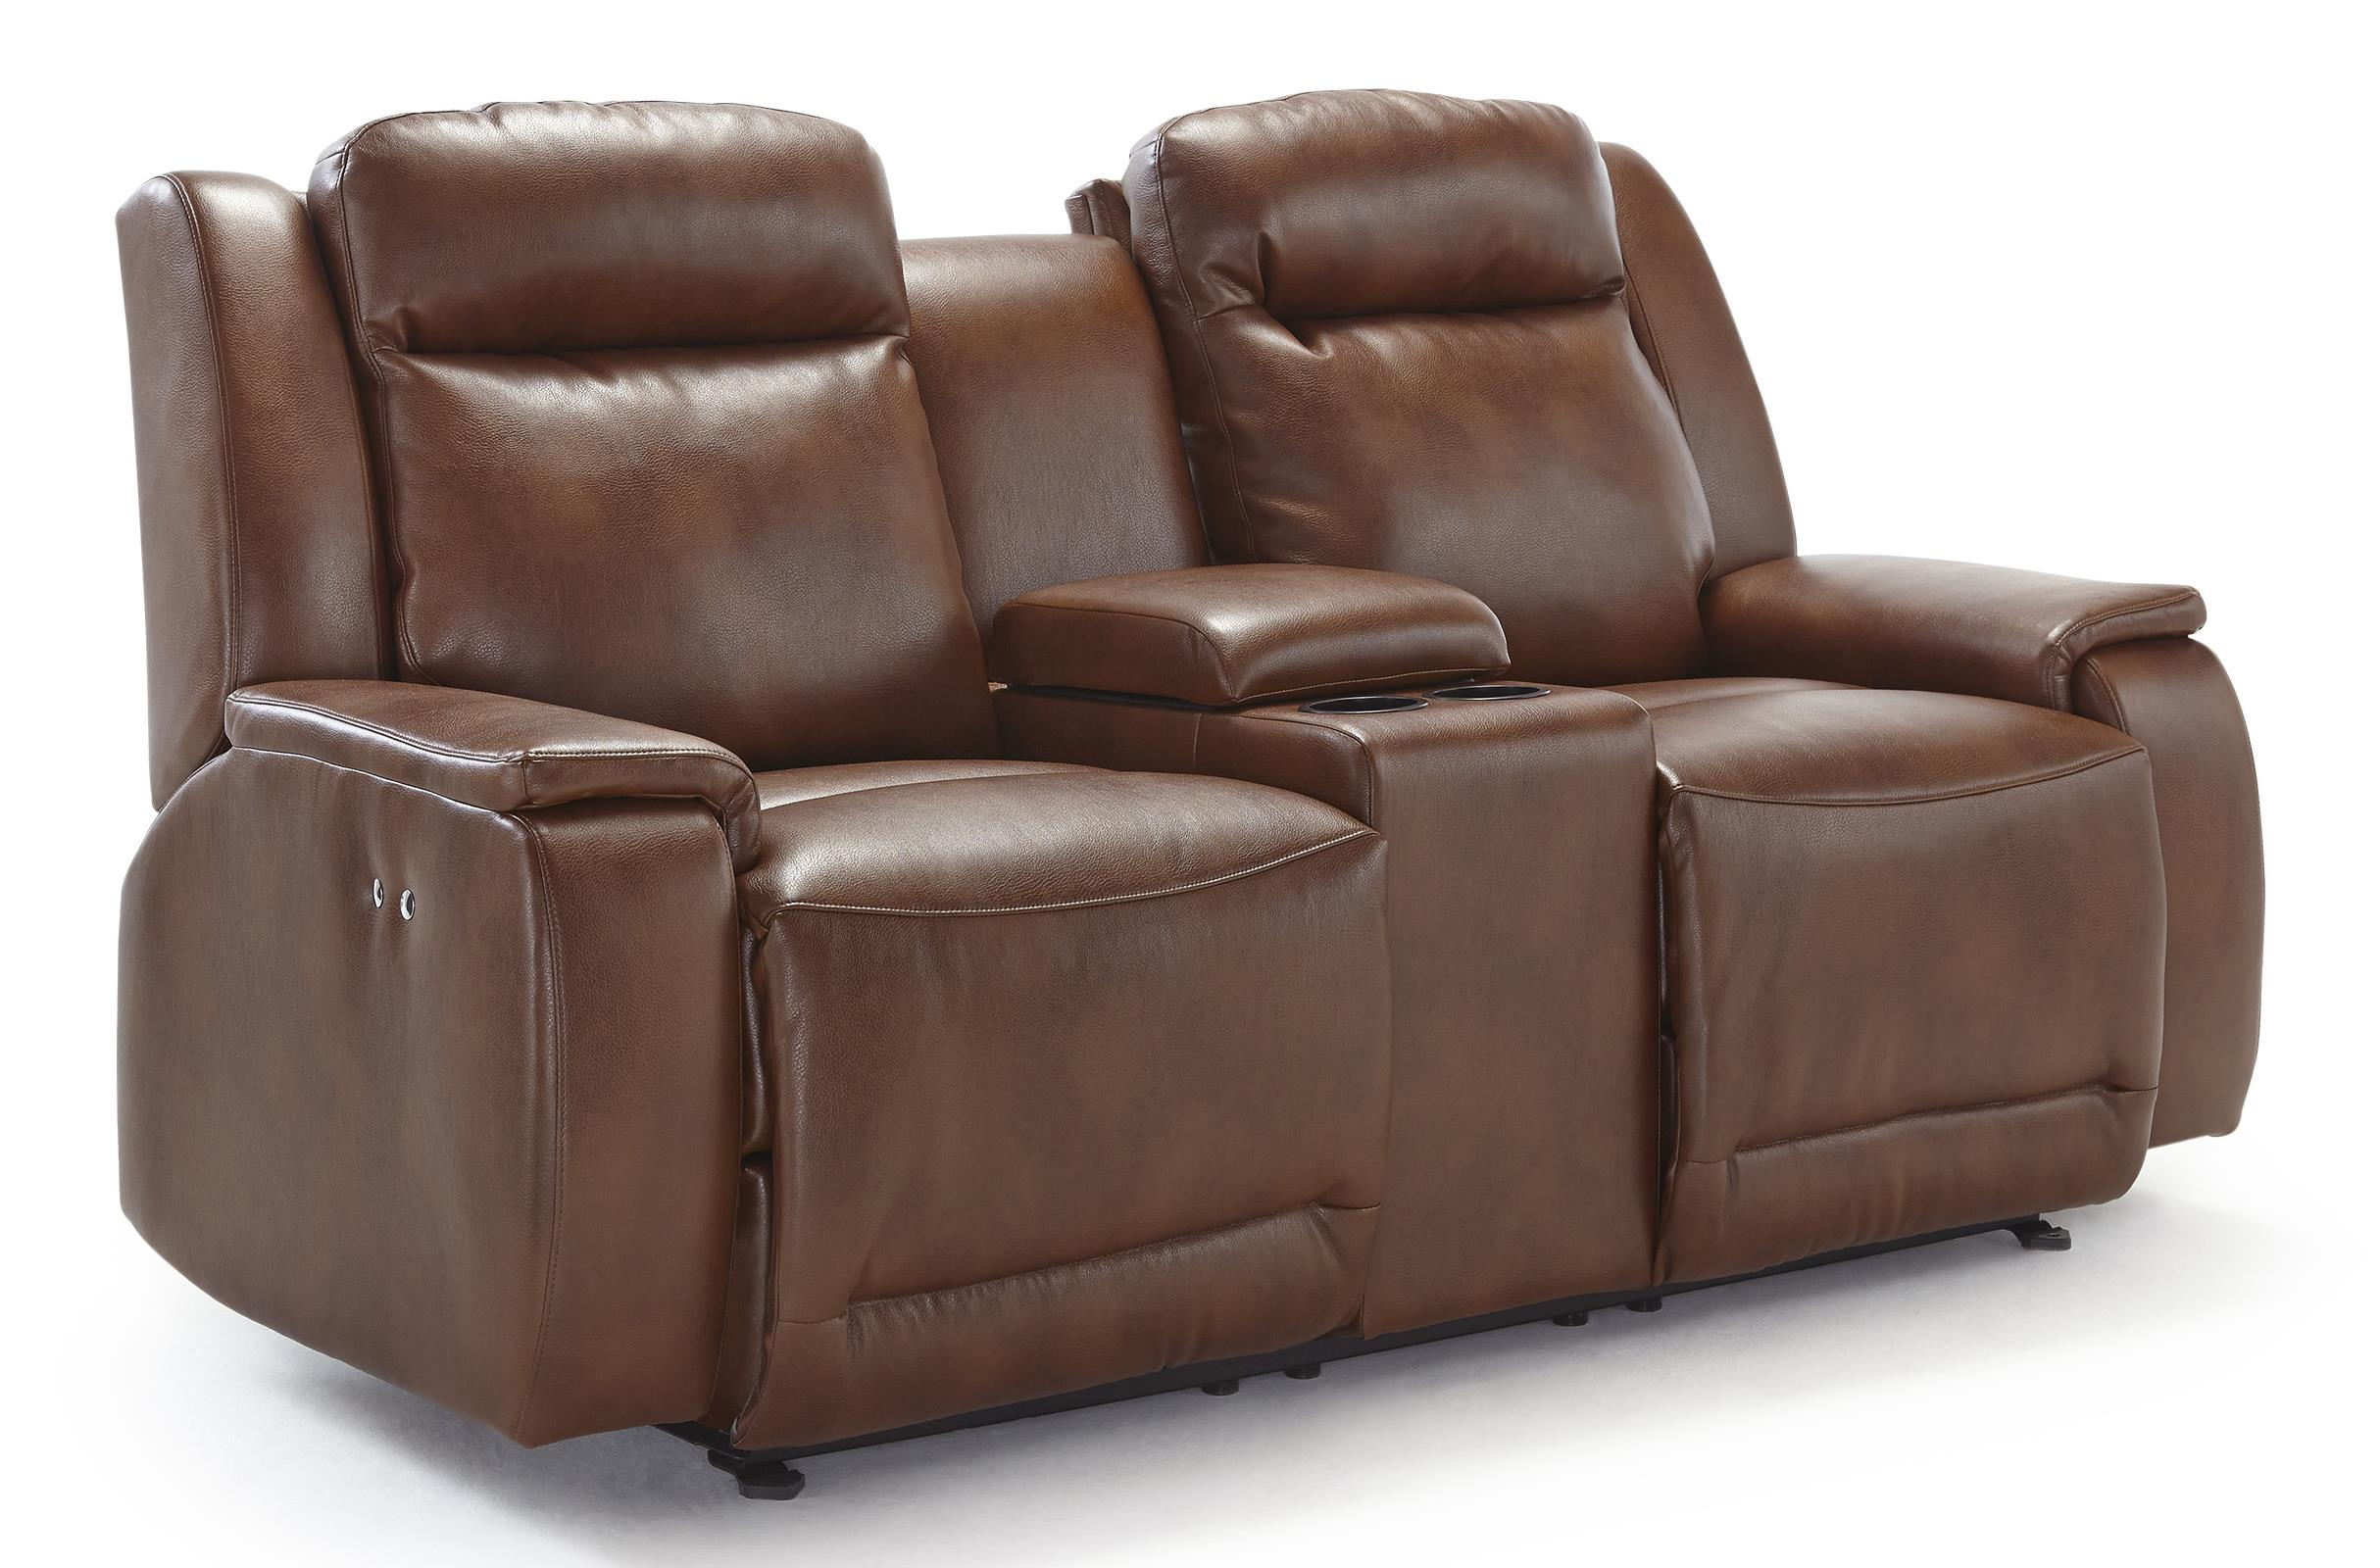 Best Home Furnishings Hardisty Pwr Space Saver Reclining Love w/ Console - Item Number: L680RQ4U-26764U